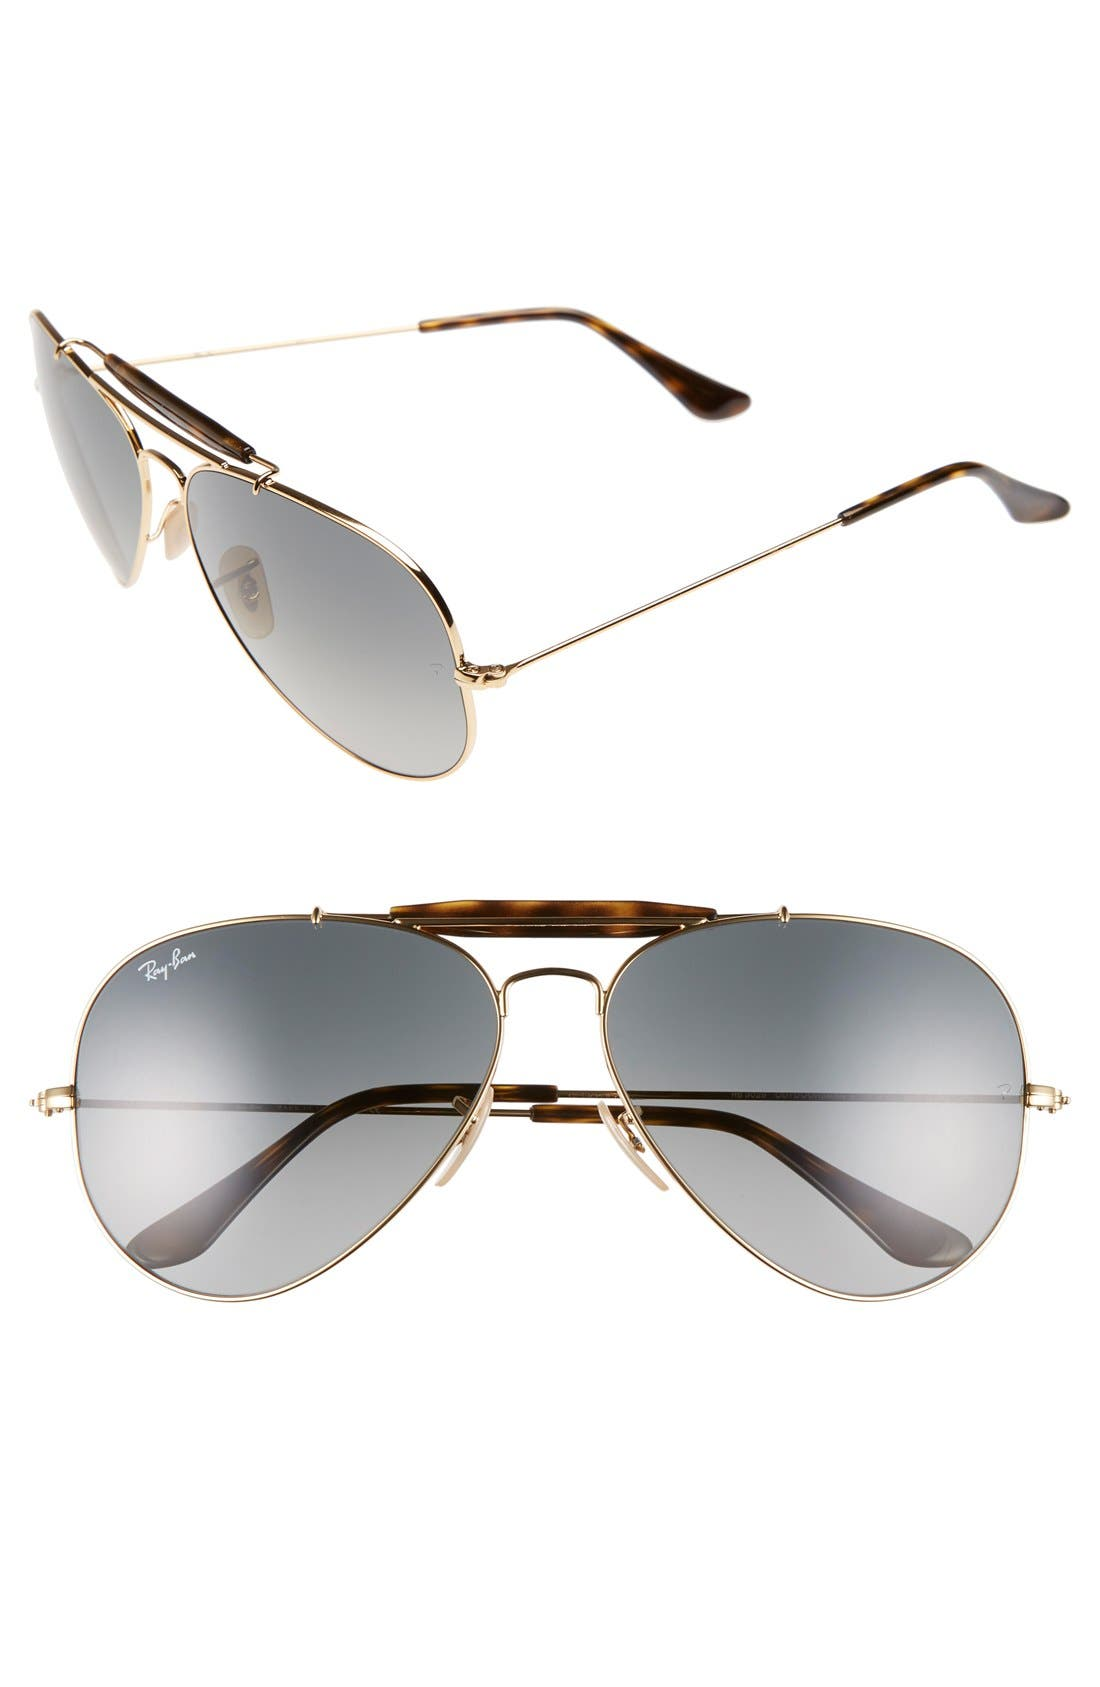 Main Image - Ray-Ban 'Outdoorsman II' 62mm Sunglasses